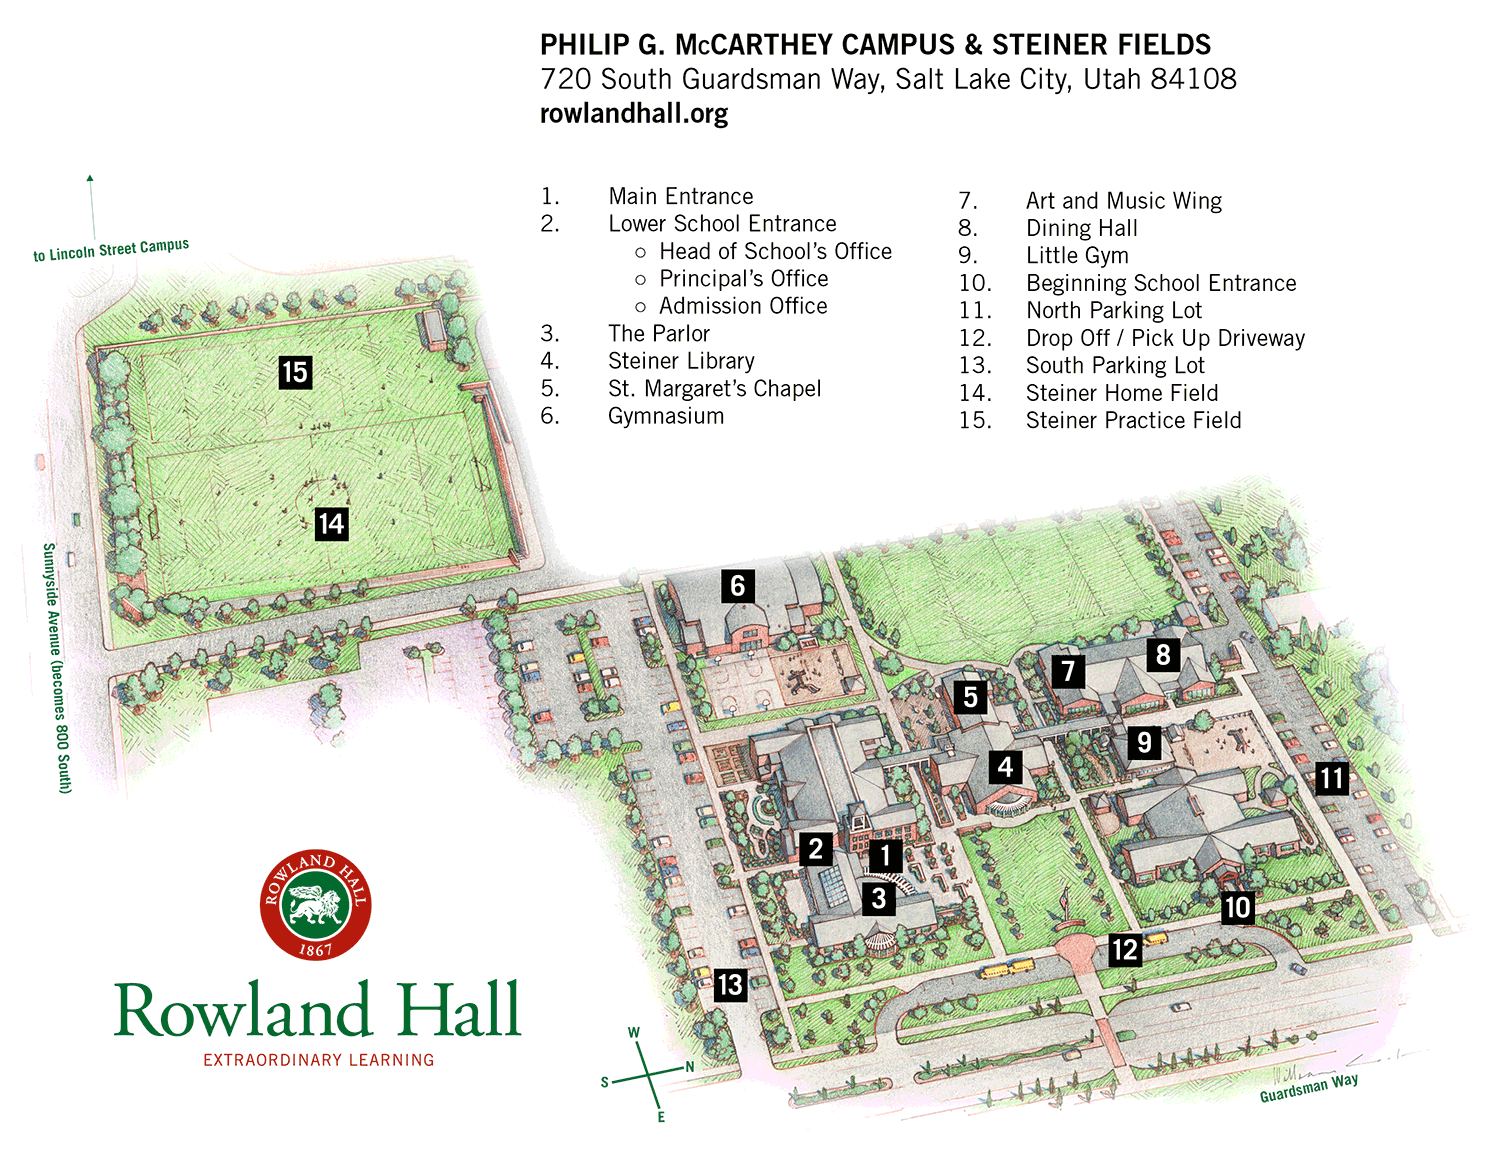 McCarthey Campus map